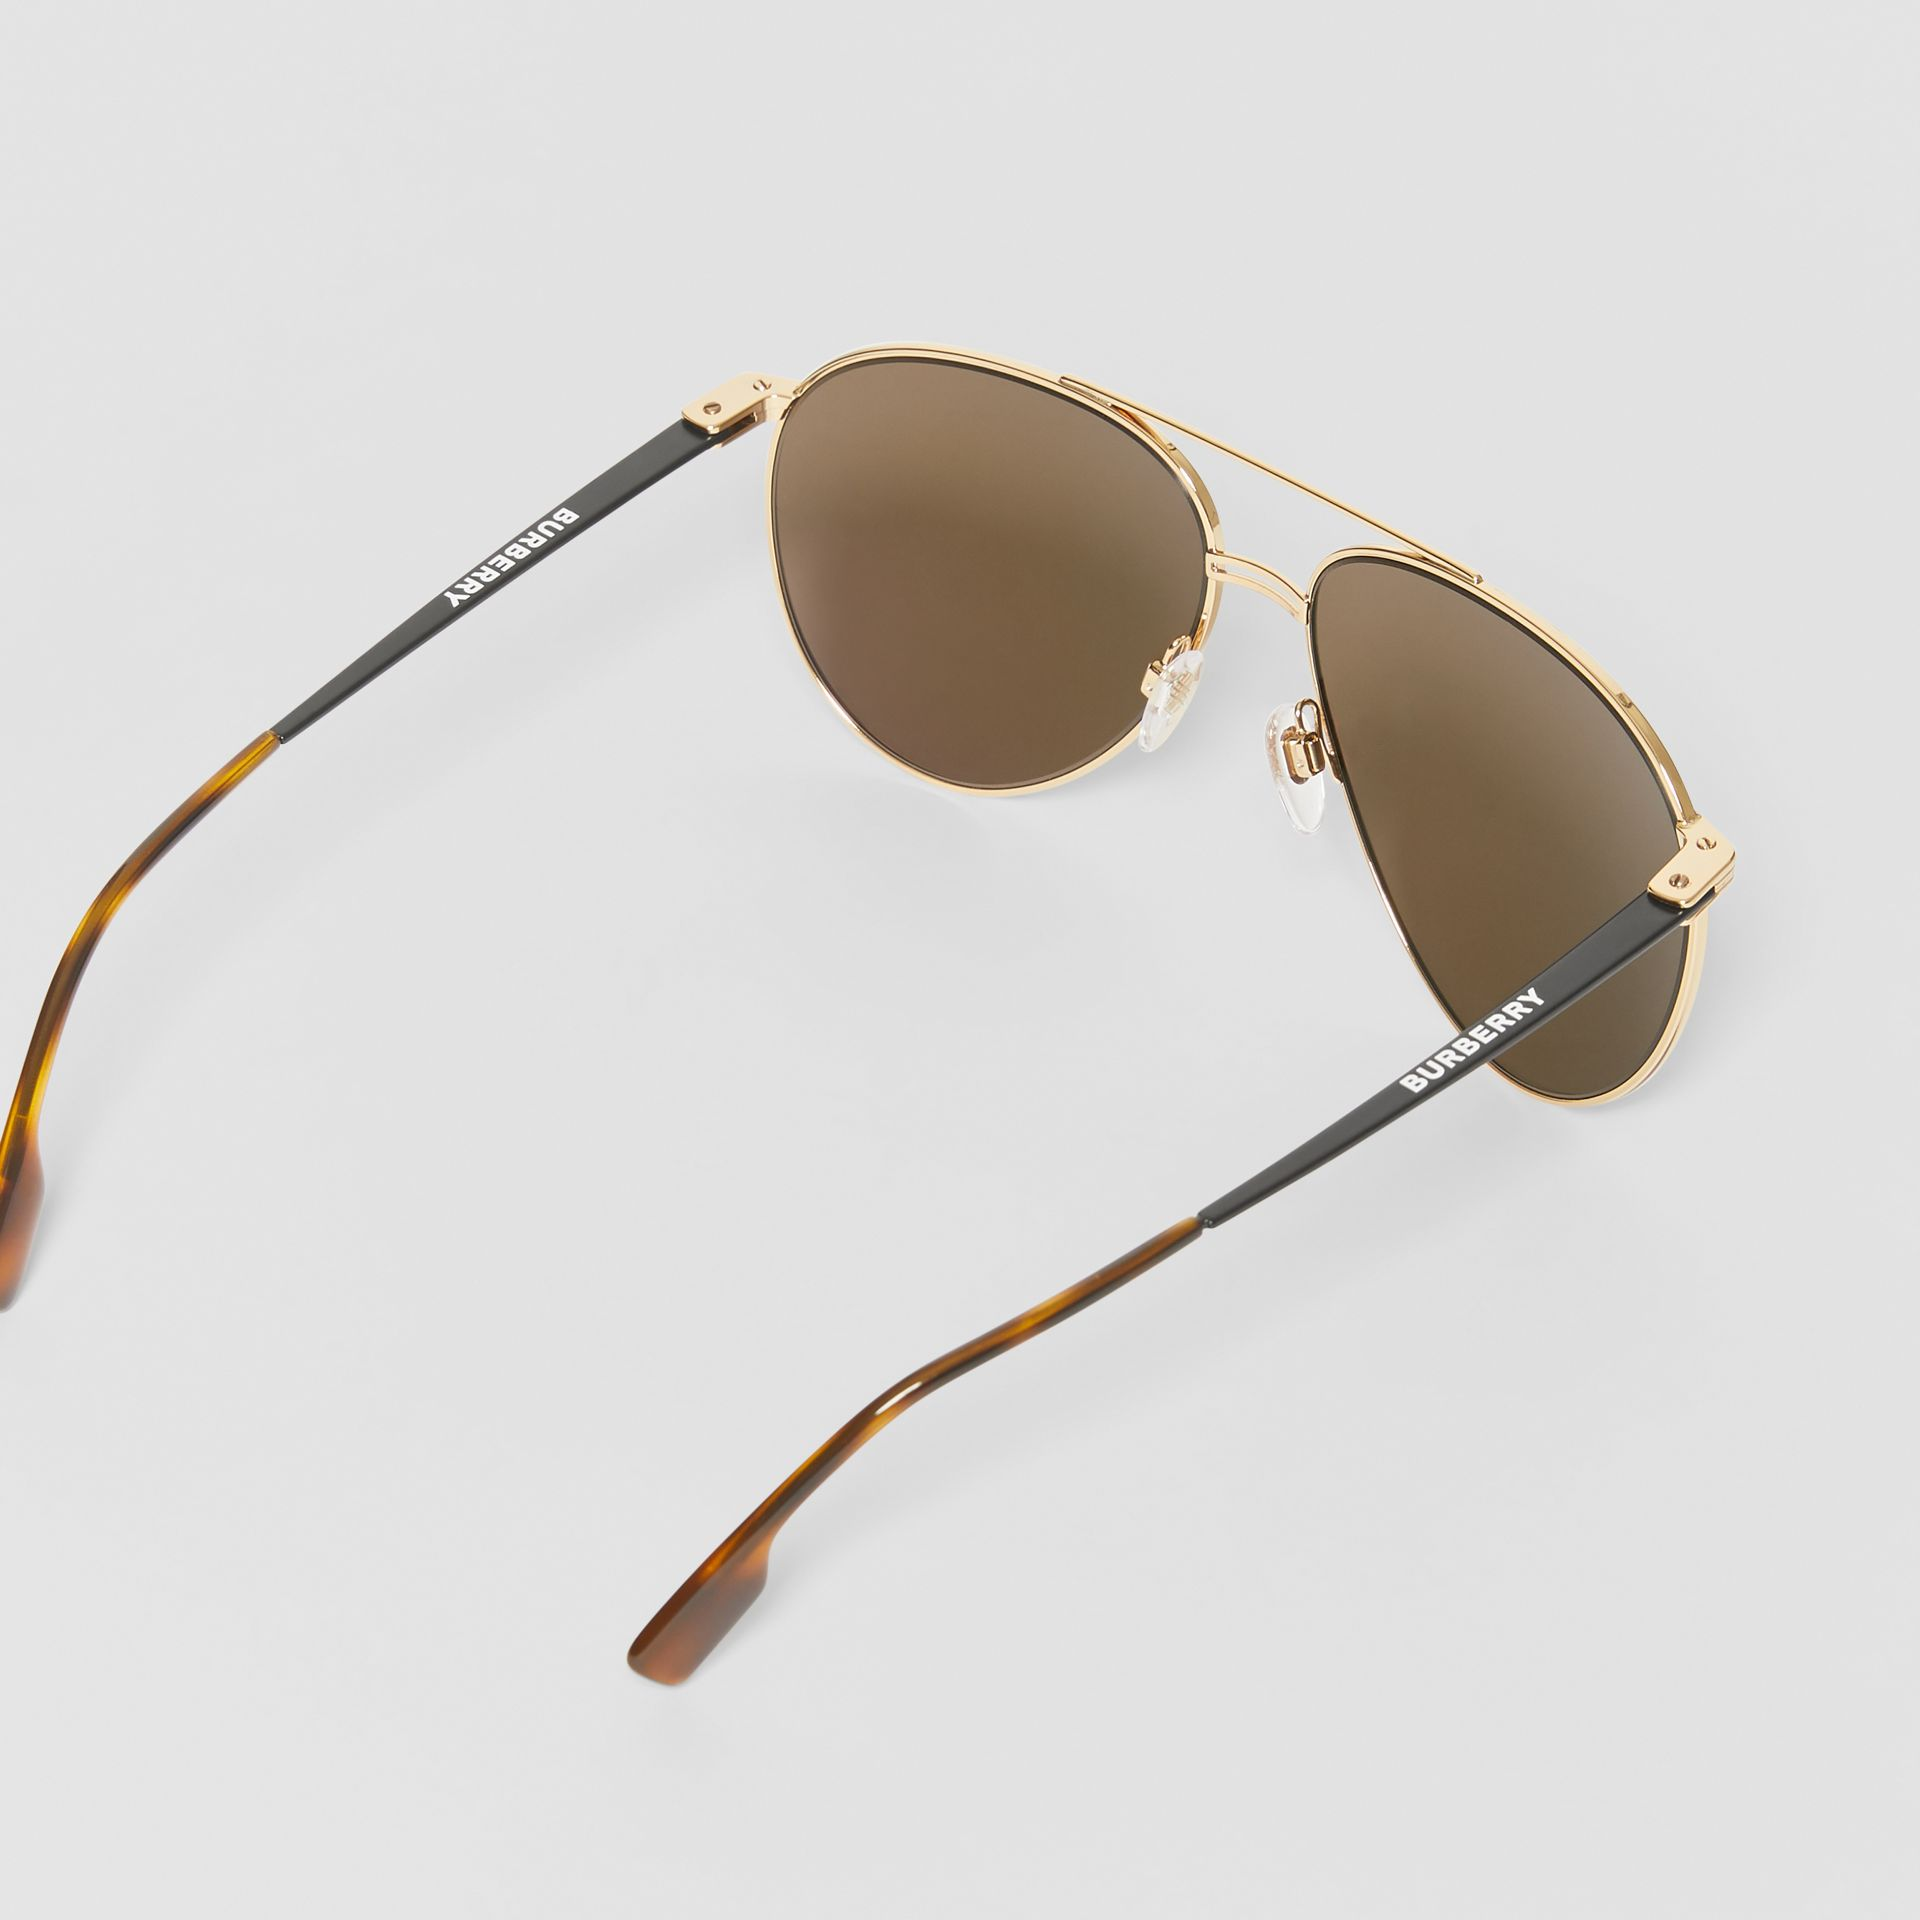 Top Bar Detail Pilot Sunglasses in Tortoiseshell - Men | Burberry Hong Kong - gallery image 4